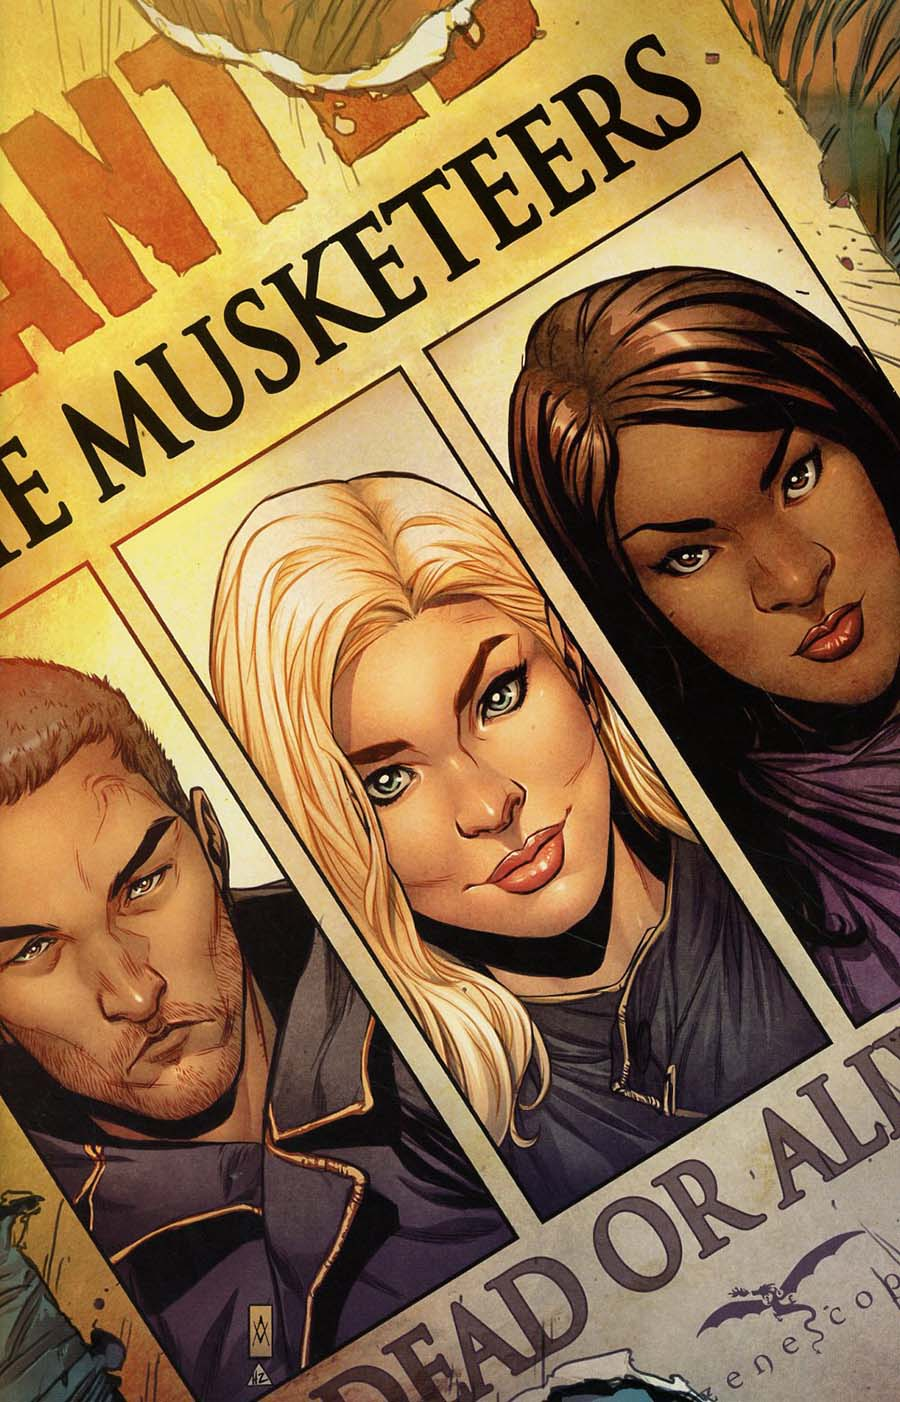 Grimm Fairy Tales Presents Musketeers #1 Cover D Ario Murti